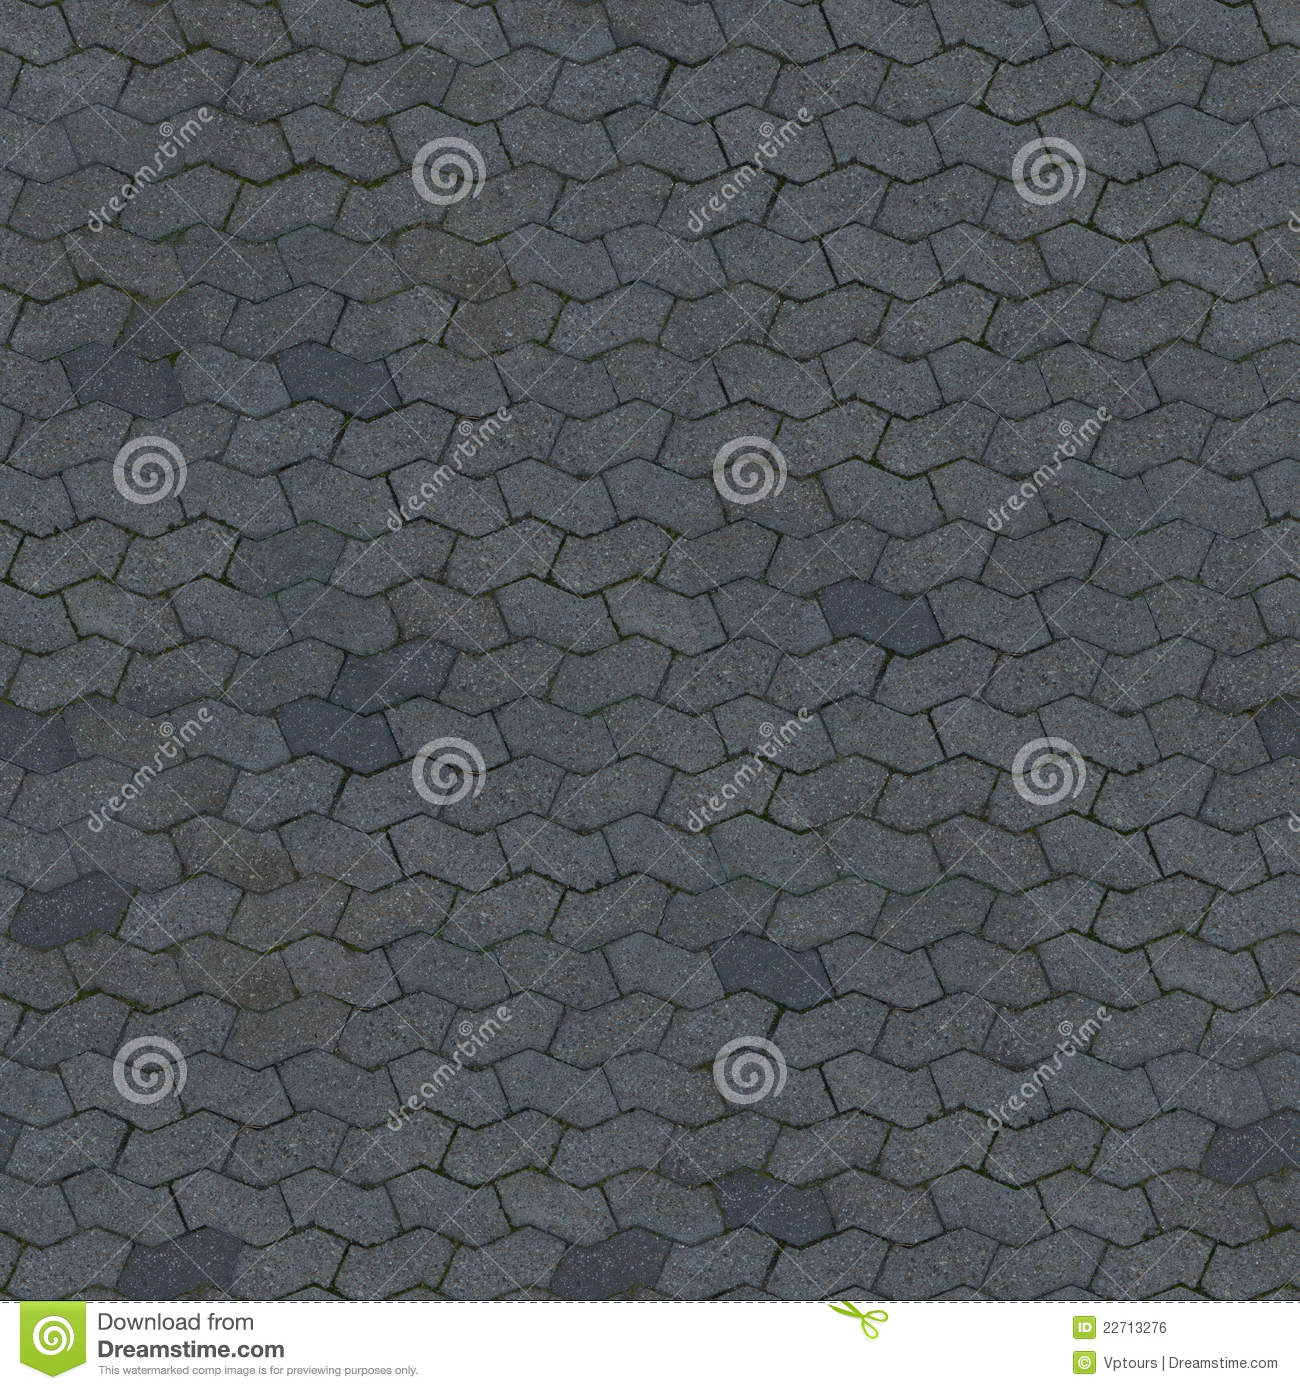 realistic road texture seamless. Realistic Road Texture Seamless